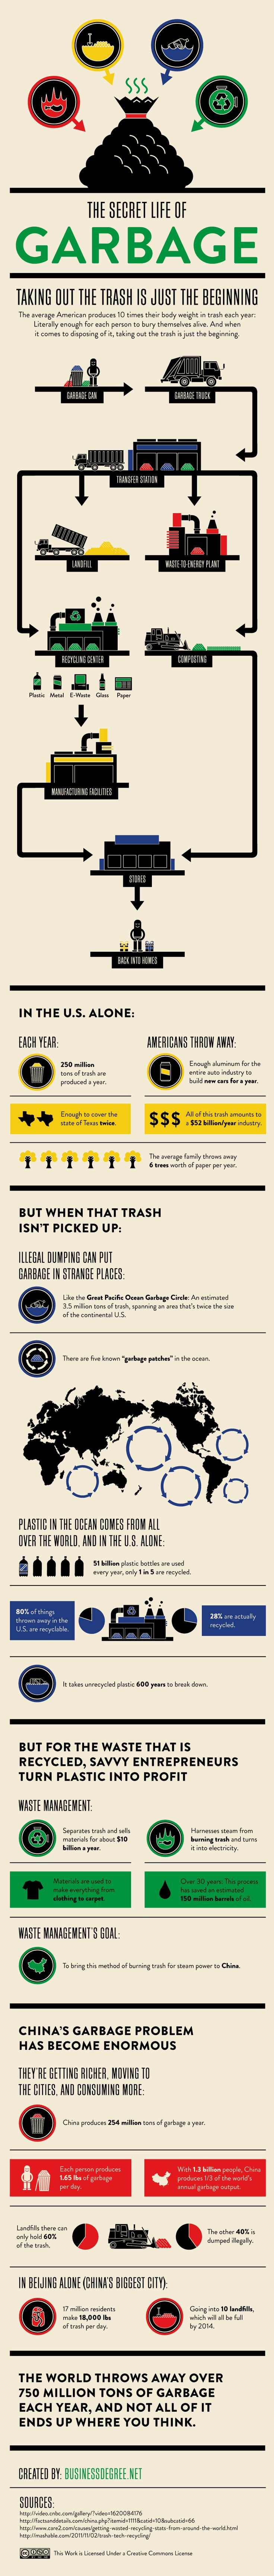 The business of garbage. Tons of facts about garbage and our need to recycle! From: Business Degree.net